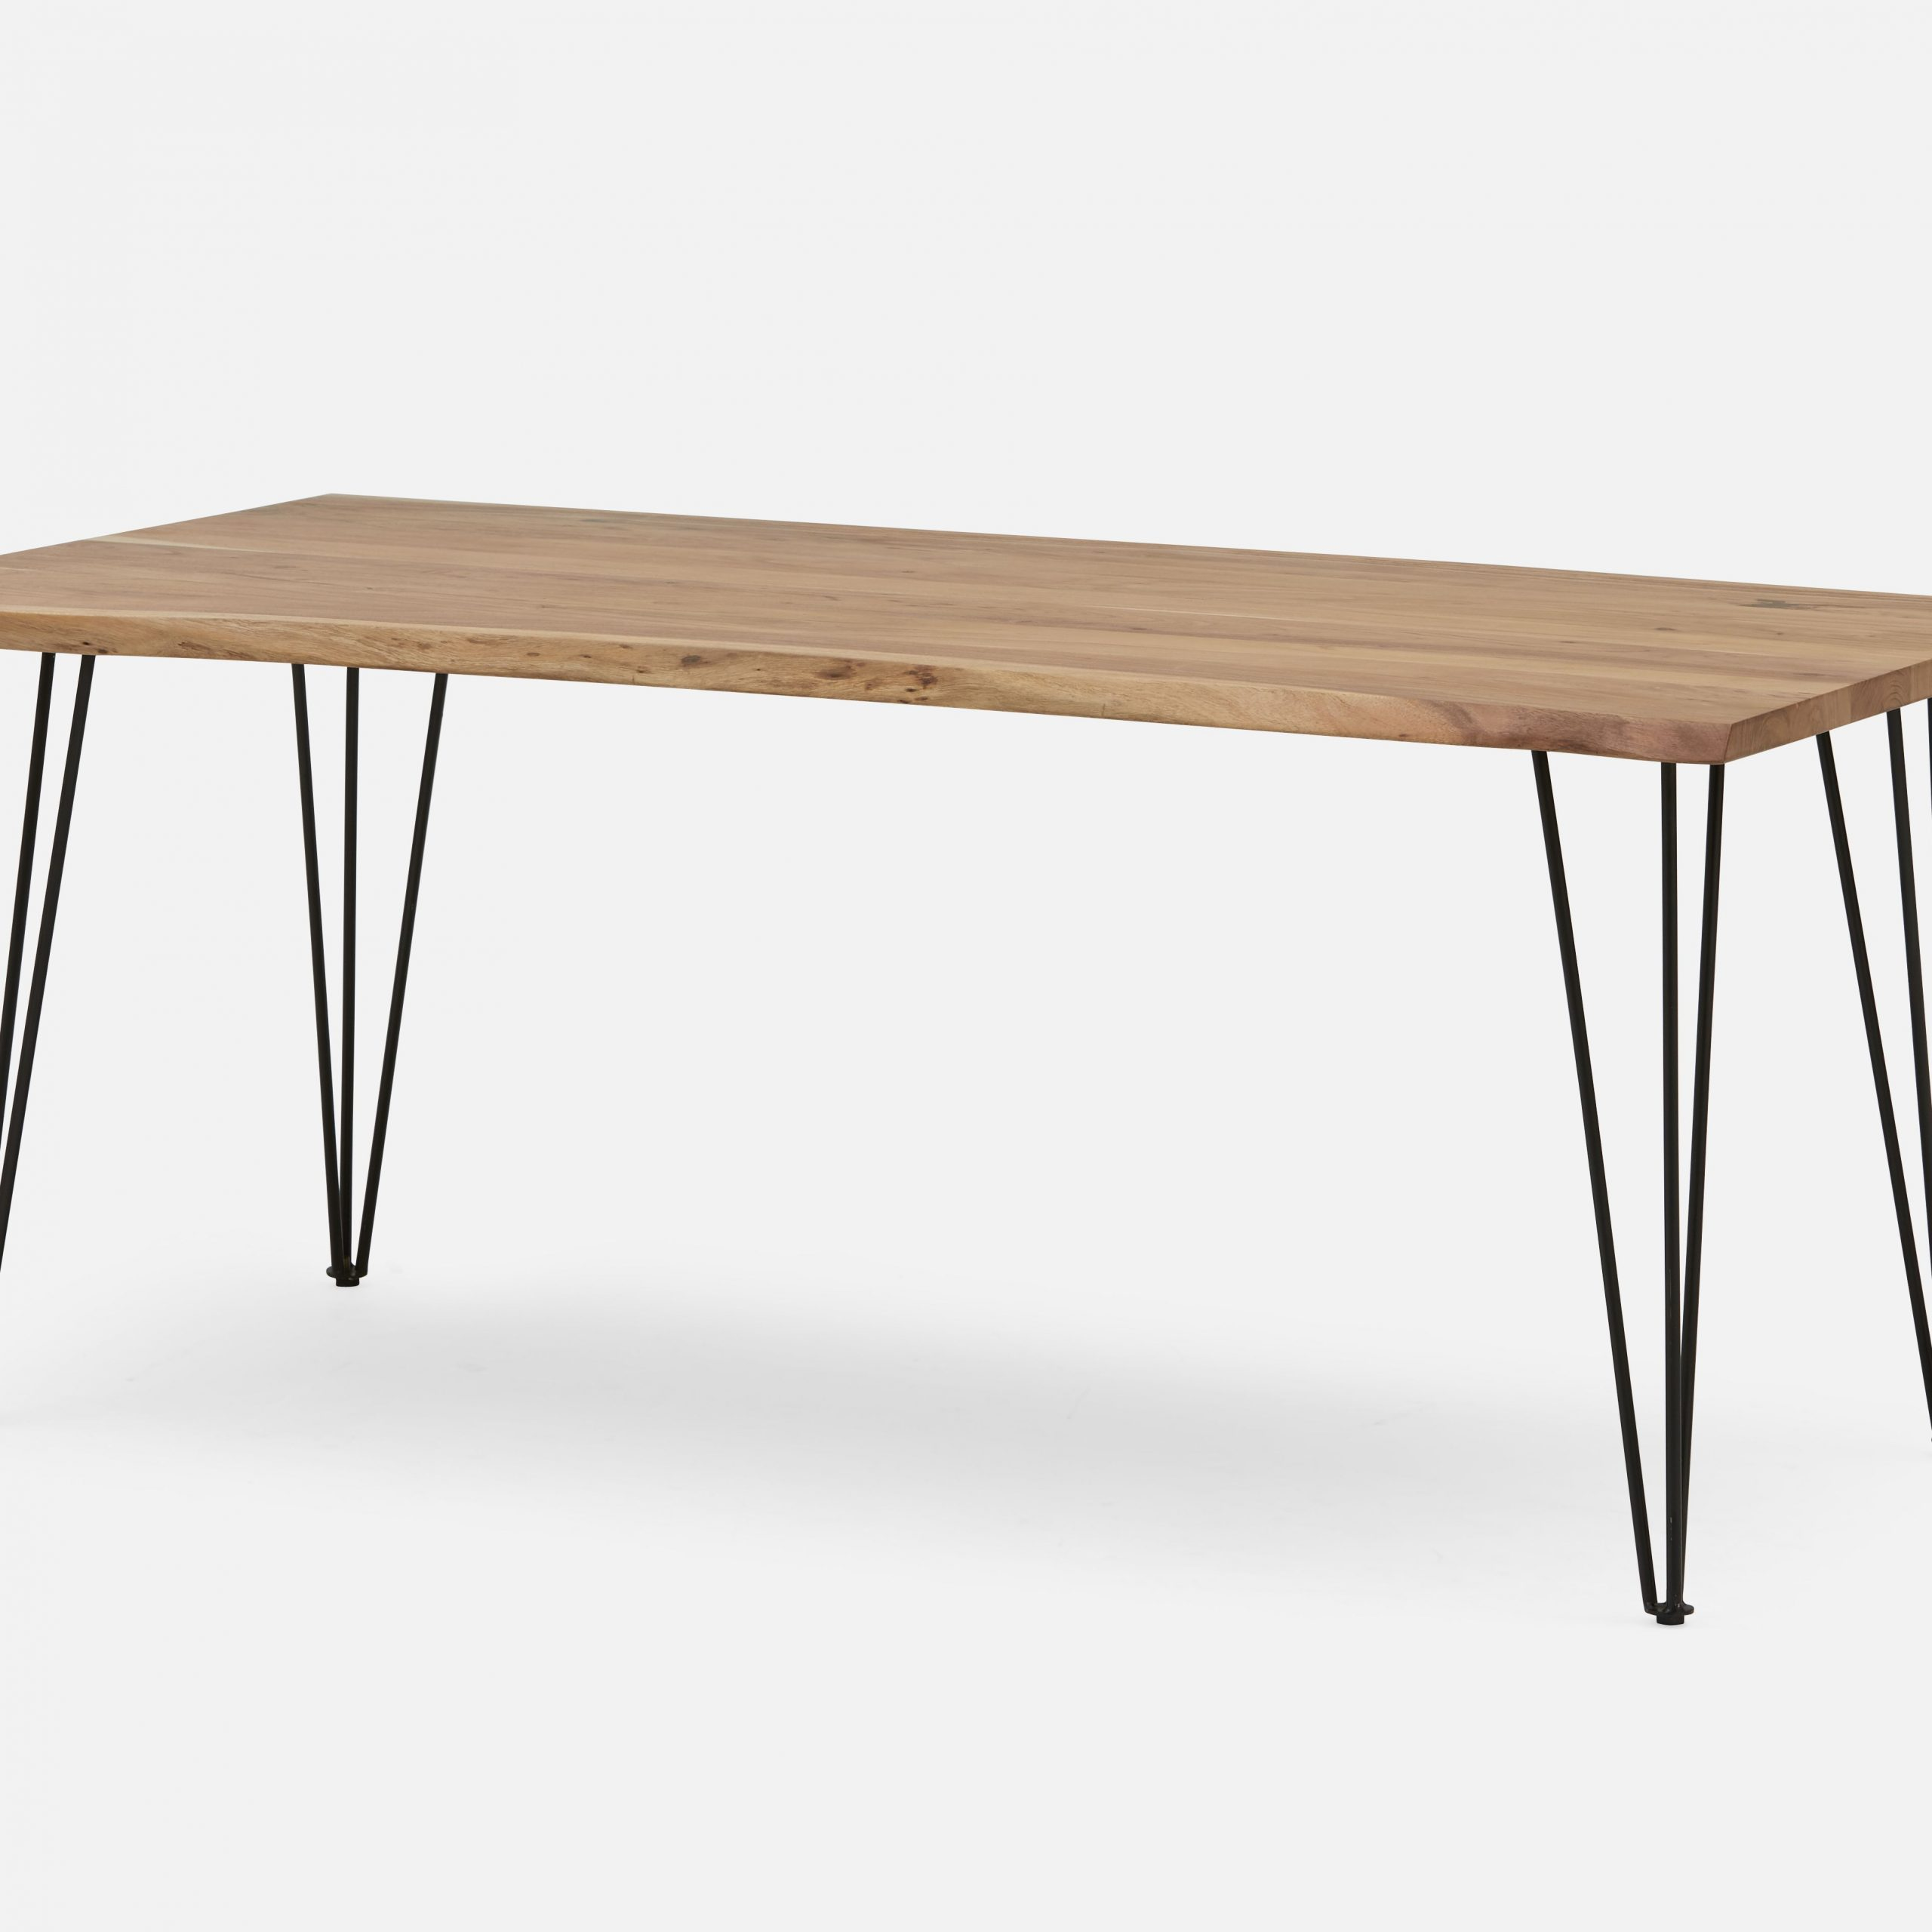 Solid Acacia Wood Dining Tables In Well Liked Reno Solid Acacia Wood Dining Table 180Cm (71'') (View 9 of 25)